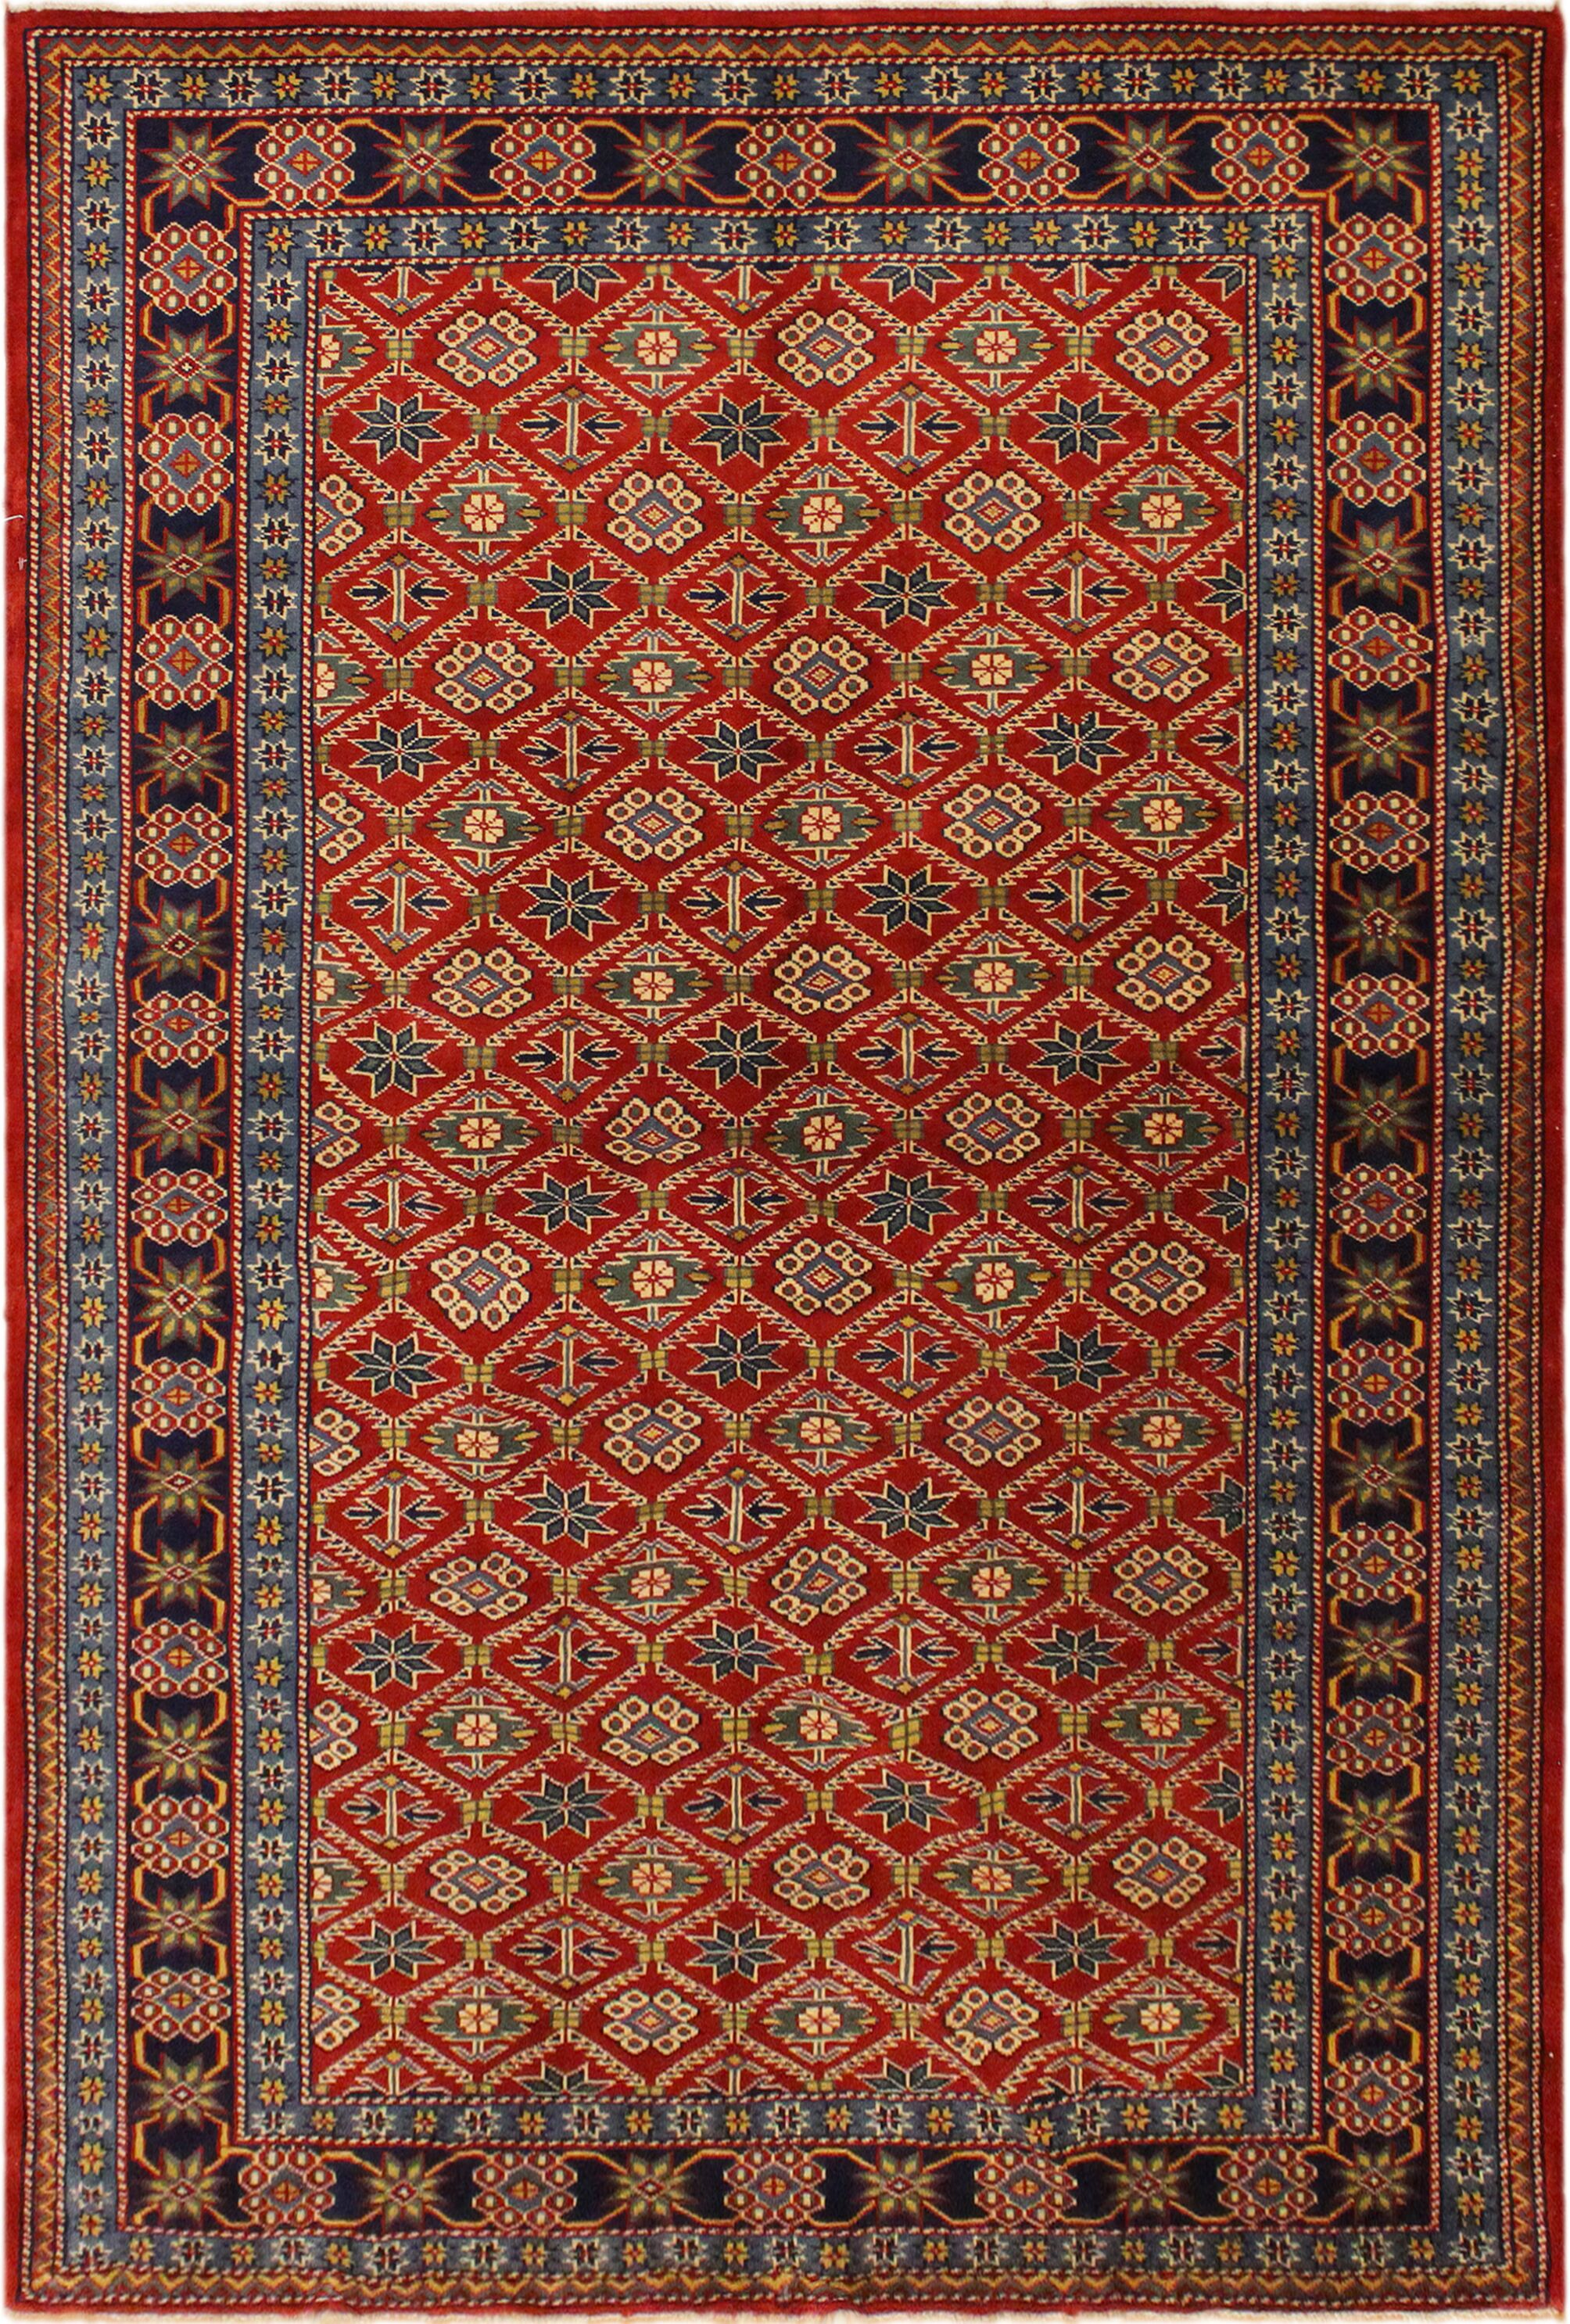 One-of-a-Kind Armillac Hand-Knotted Wool Red/Blue Area Rug